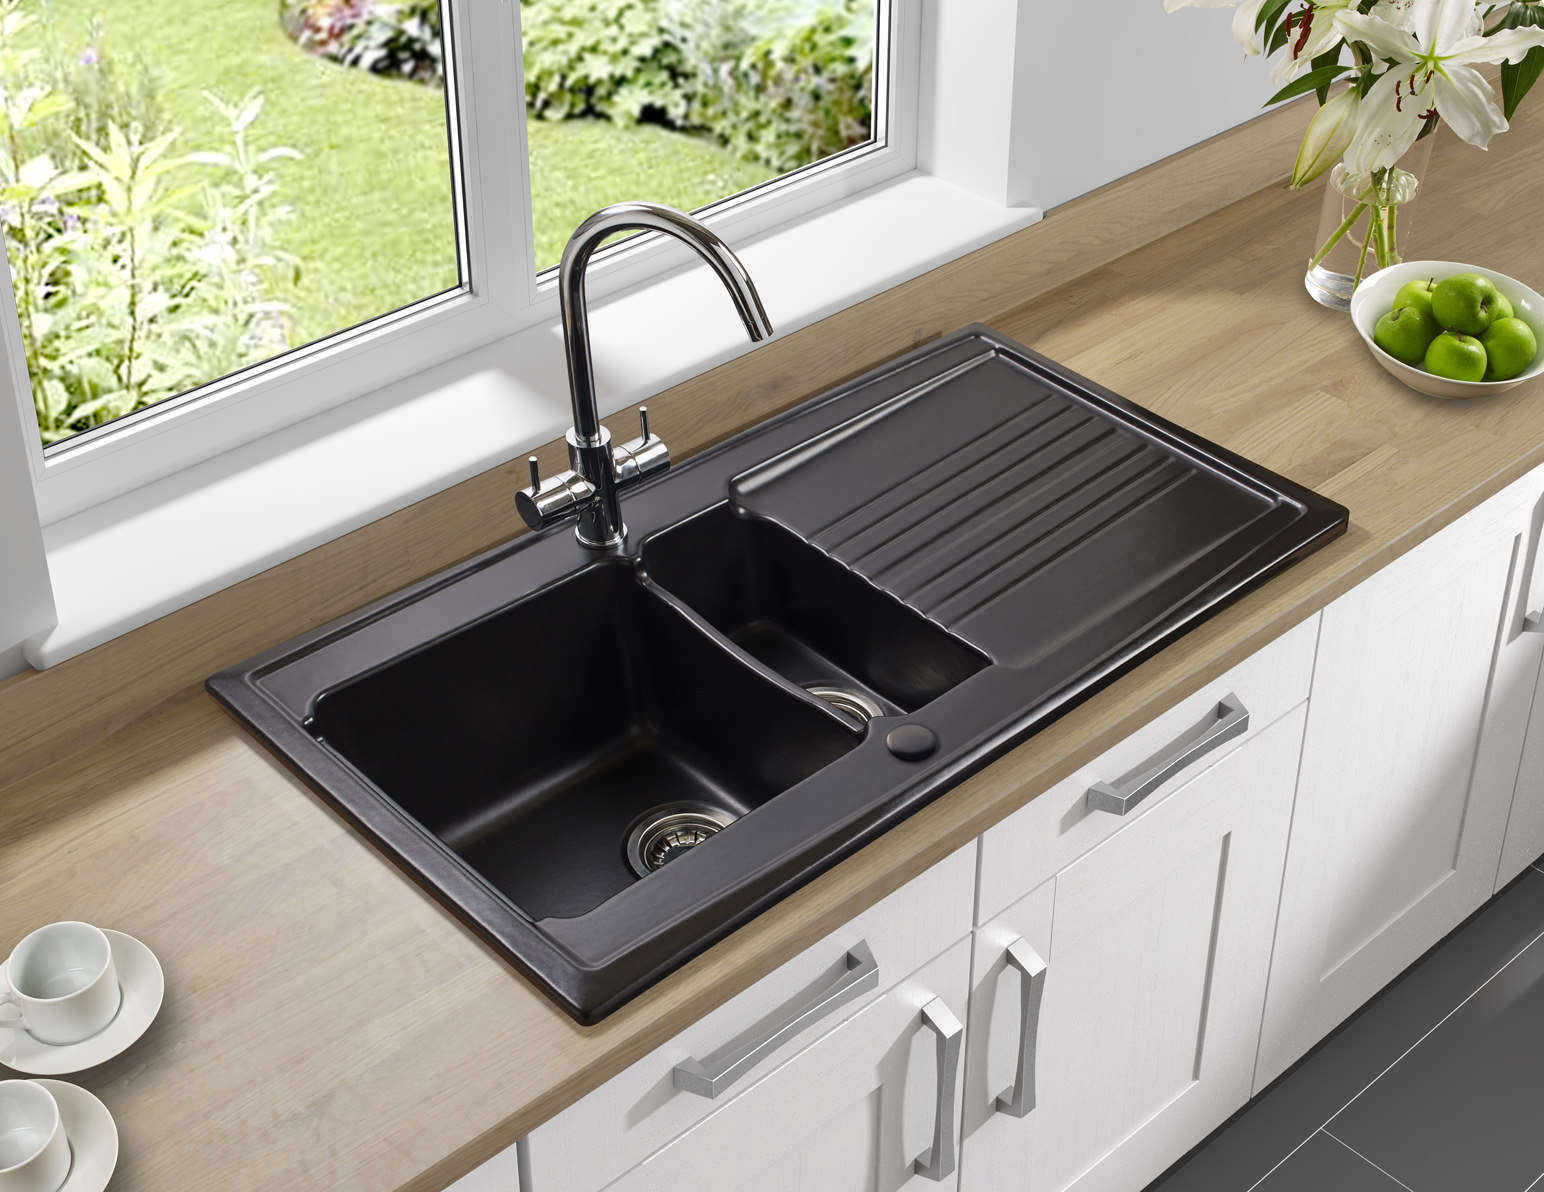 kitchen sinks with drainboards wall murals astracast equinox 1 5 bowl white ceramic inset